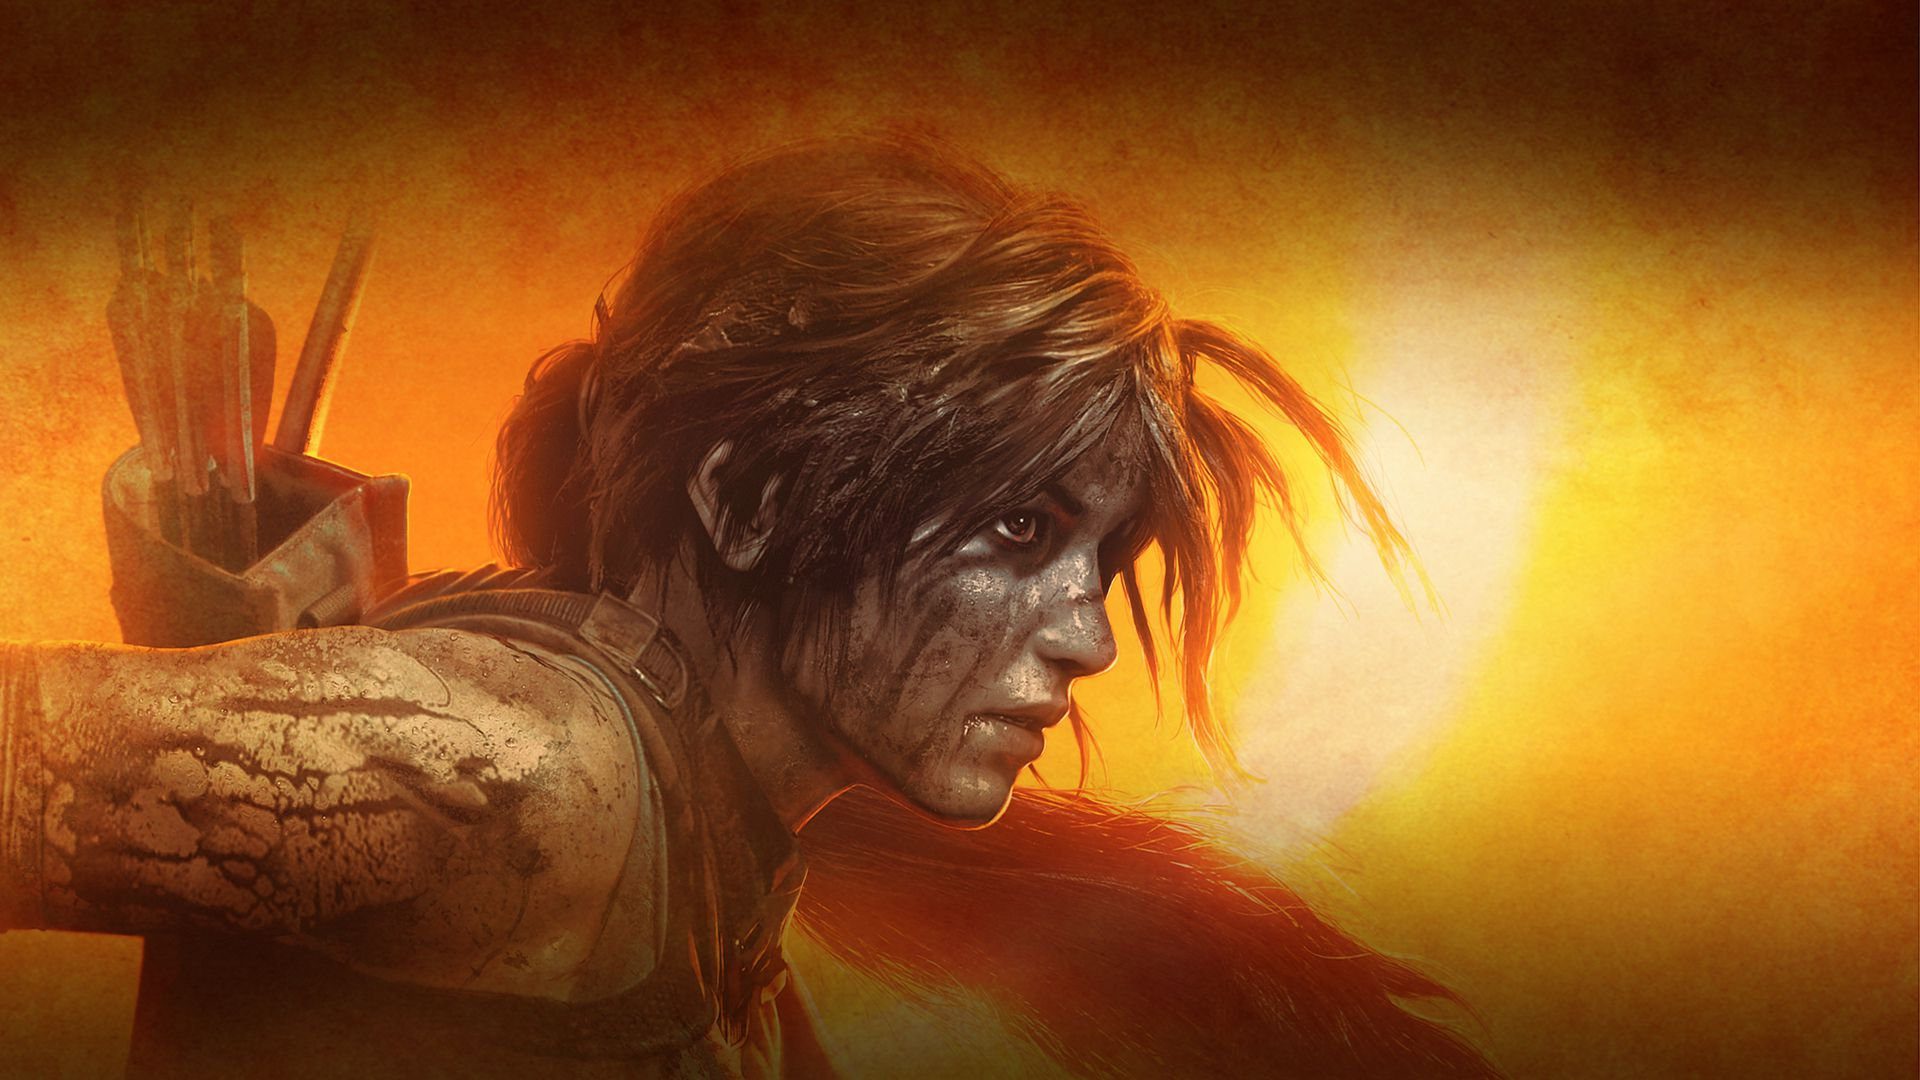 Arte Grafica Lara Shadow Of The Tomb Raider Recensione L Ultima Avventura Di Lara Croft